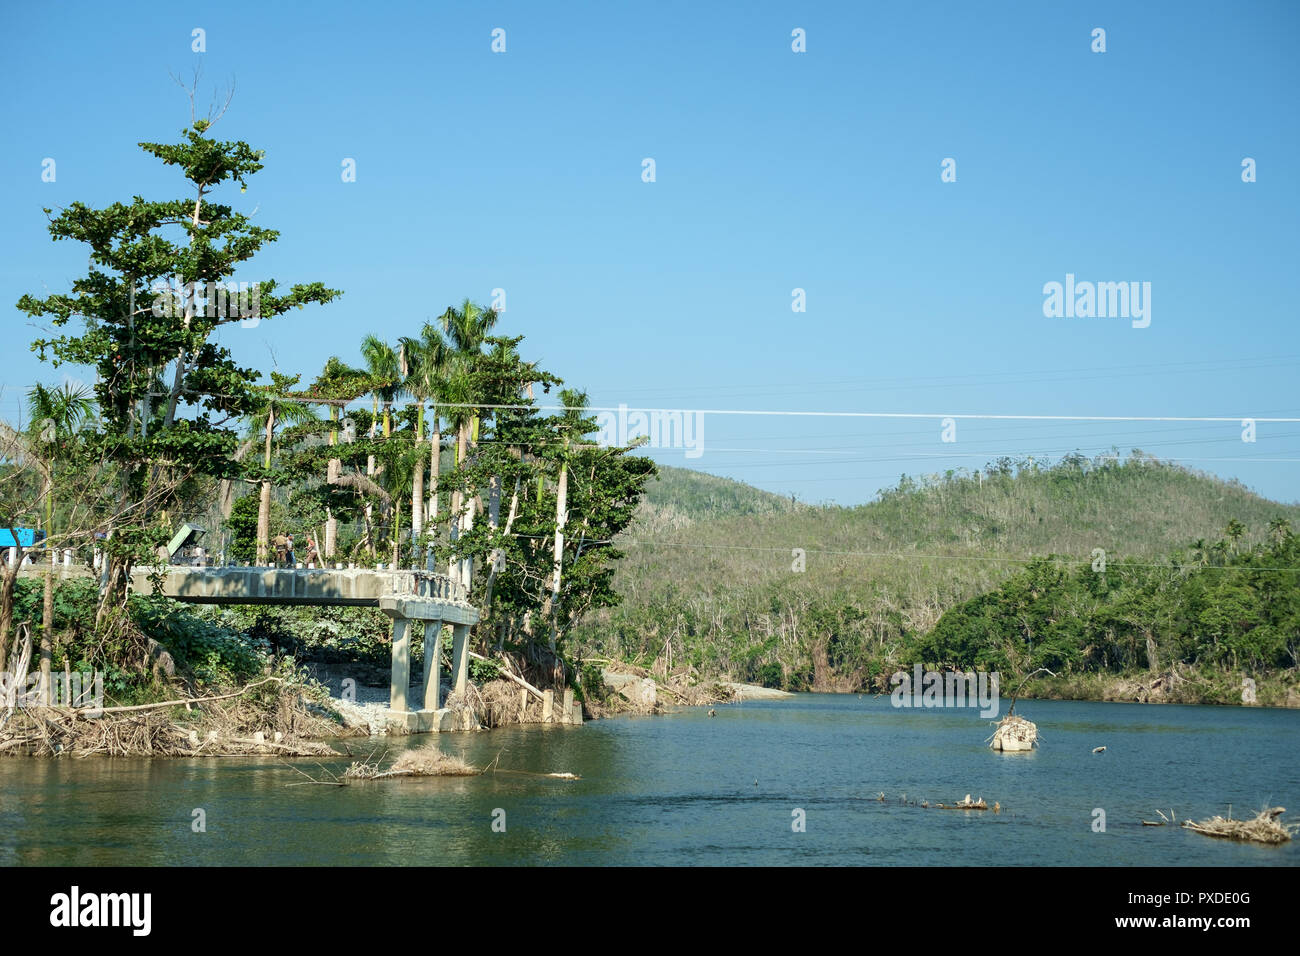 Teh End of a Road Bridge at River Toa, Baracoa, Cuba - Stock Image